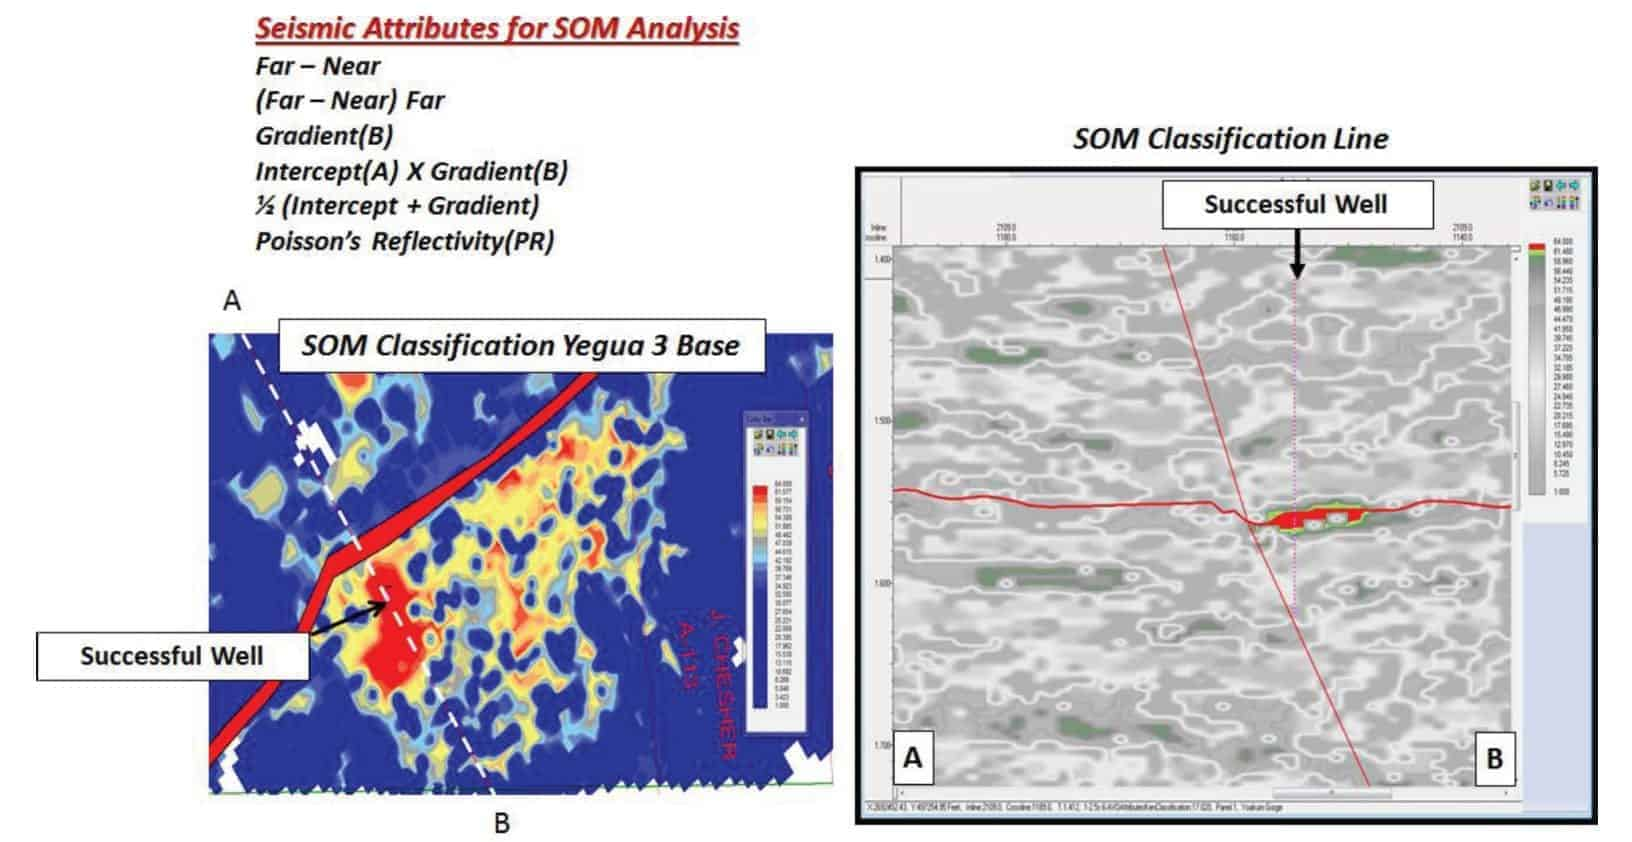 Seismic Attributes for SOM Analysis